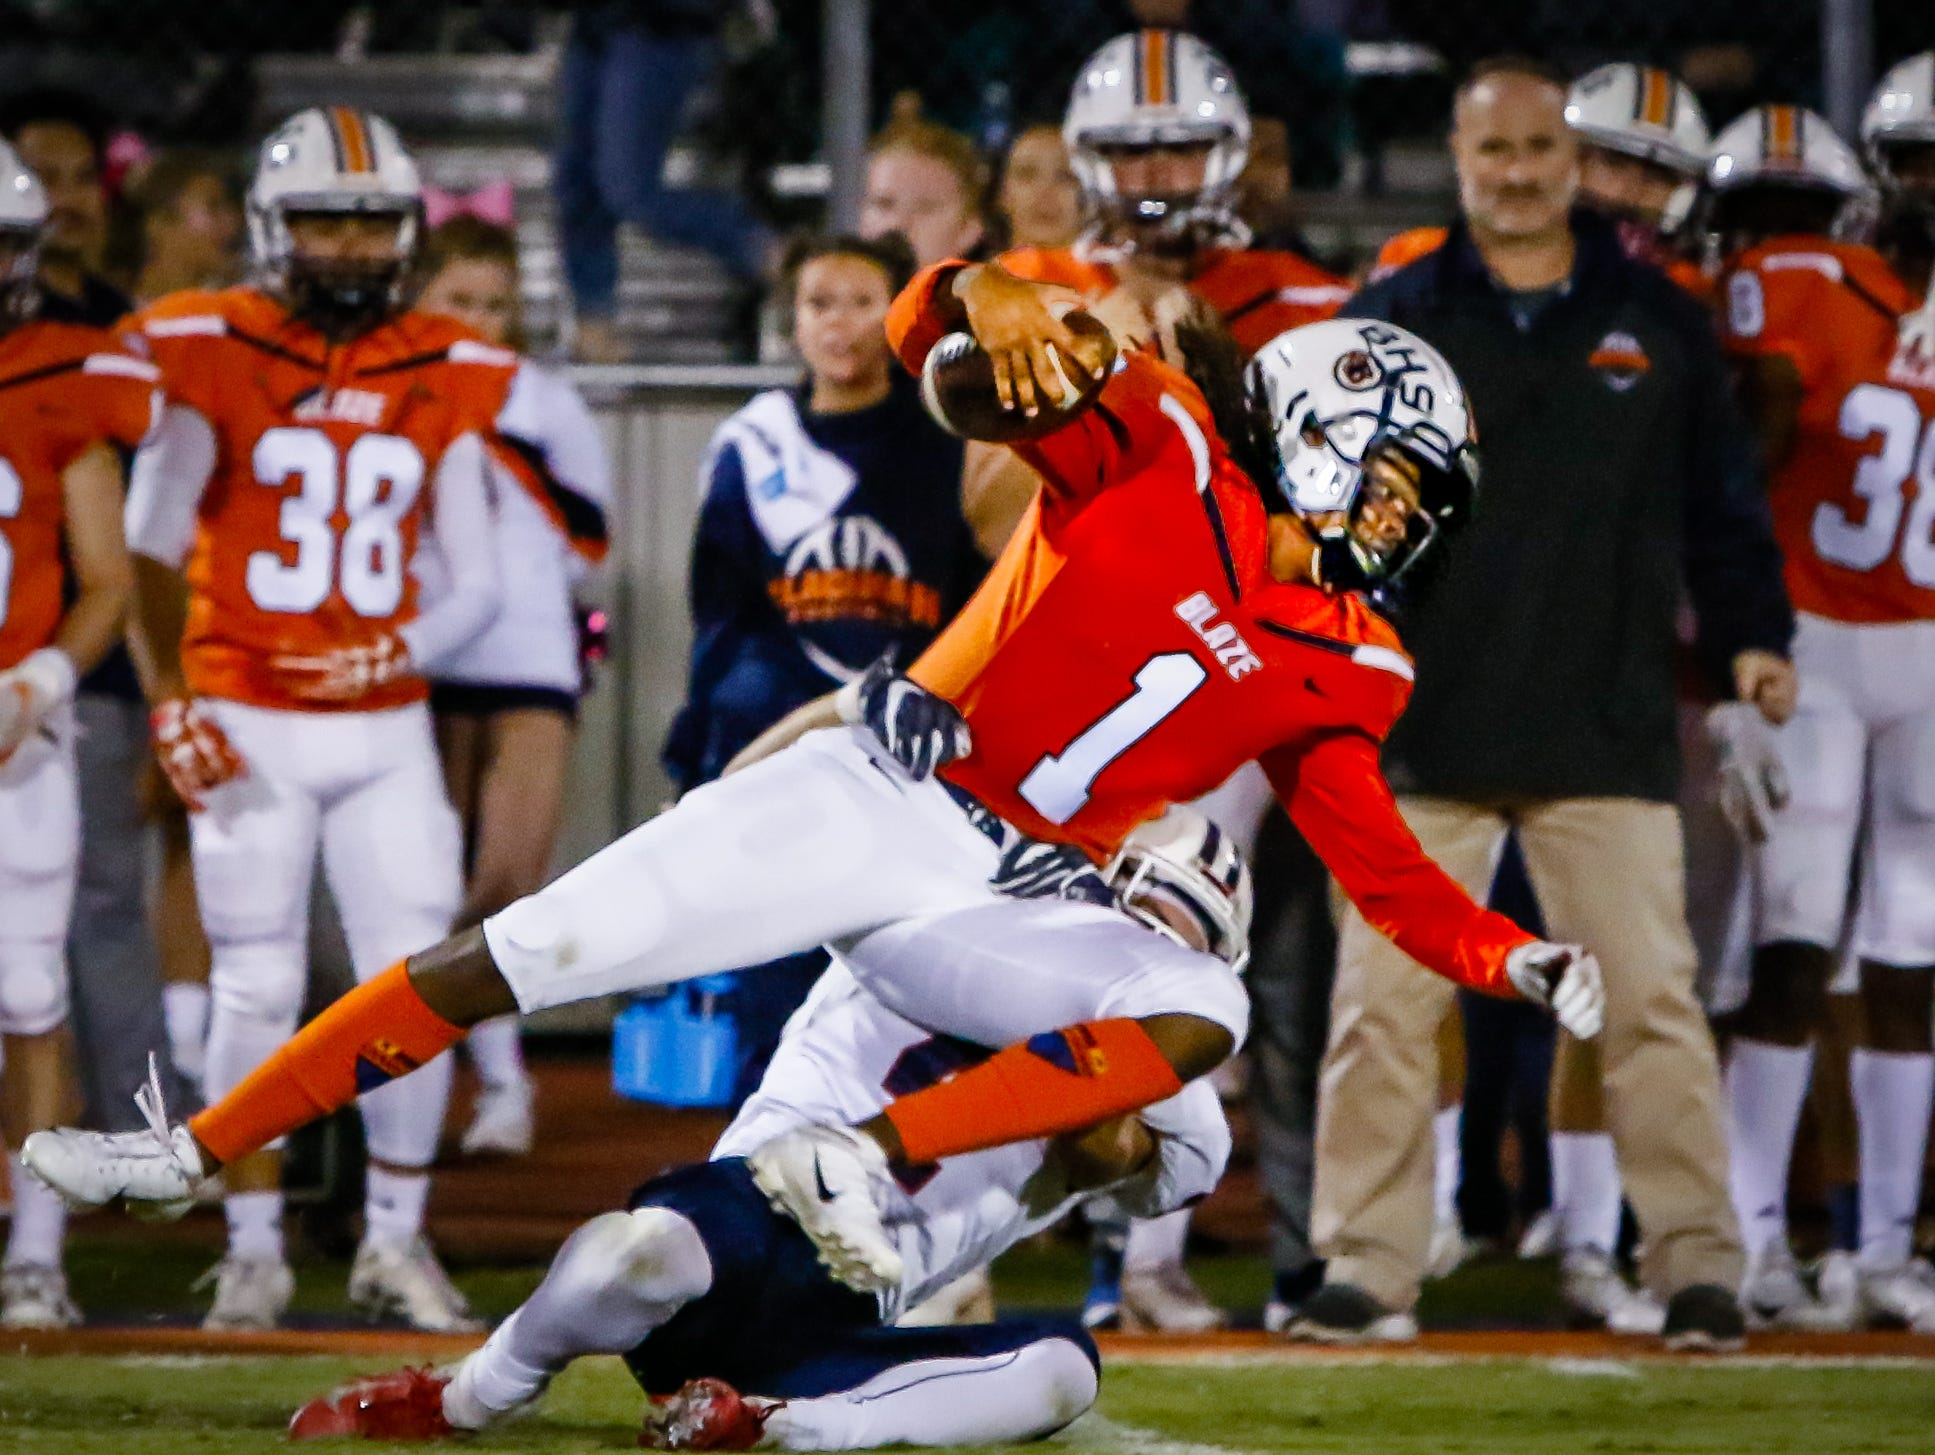 Blackman's Adonis Otey fights for more yardage while being taken to the ground by Cookeville's Jacob Stamps.